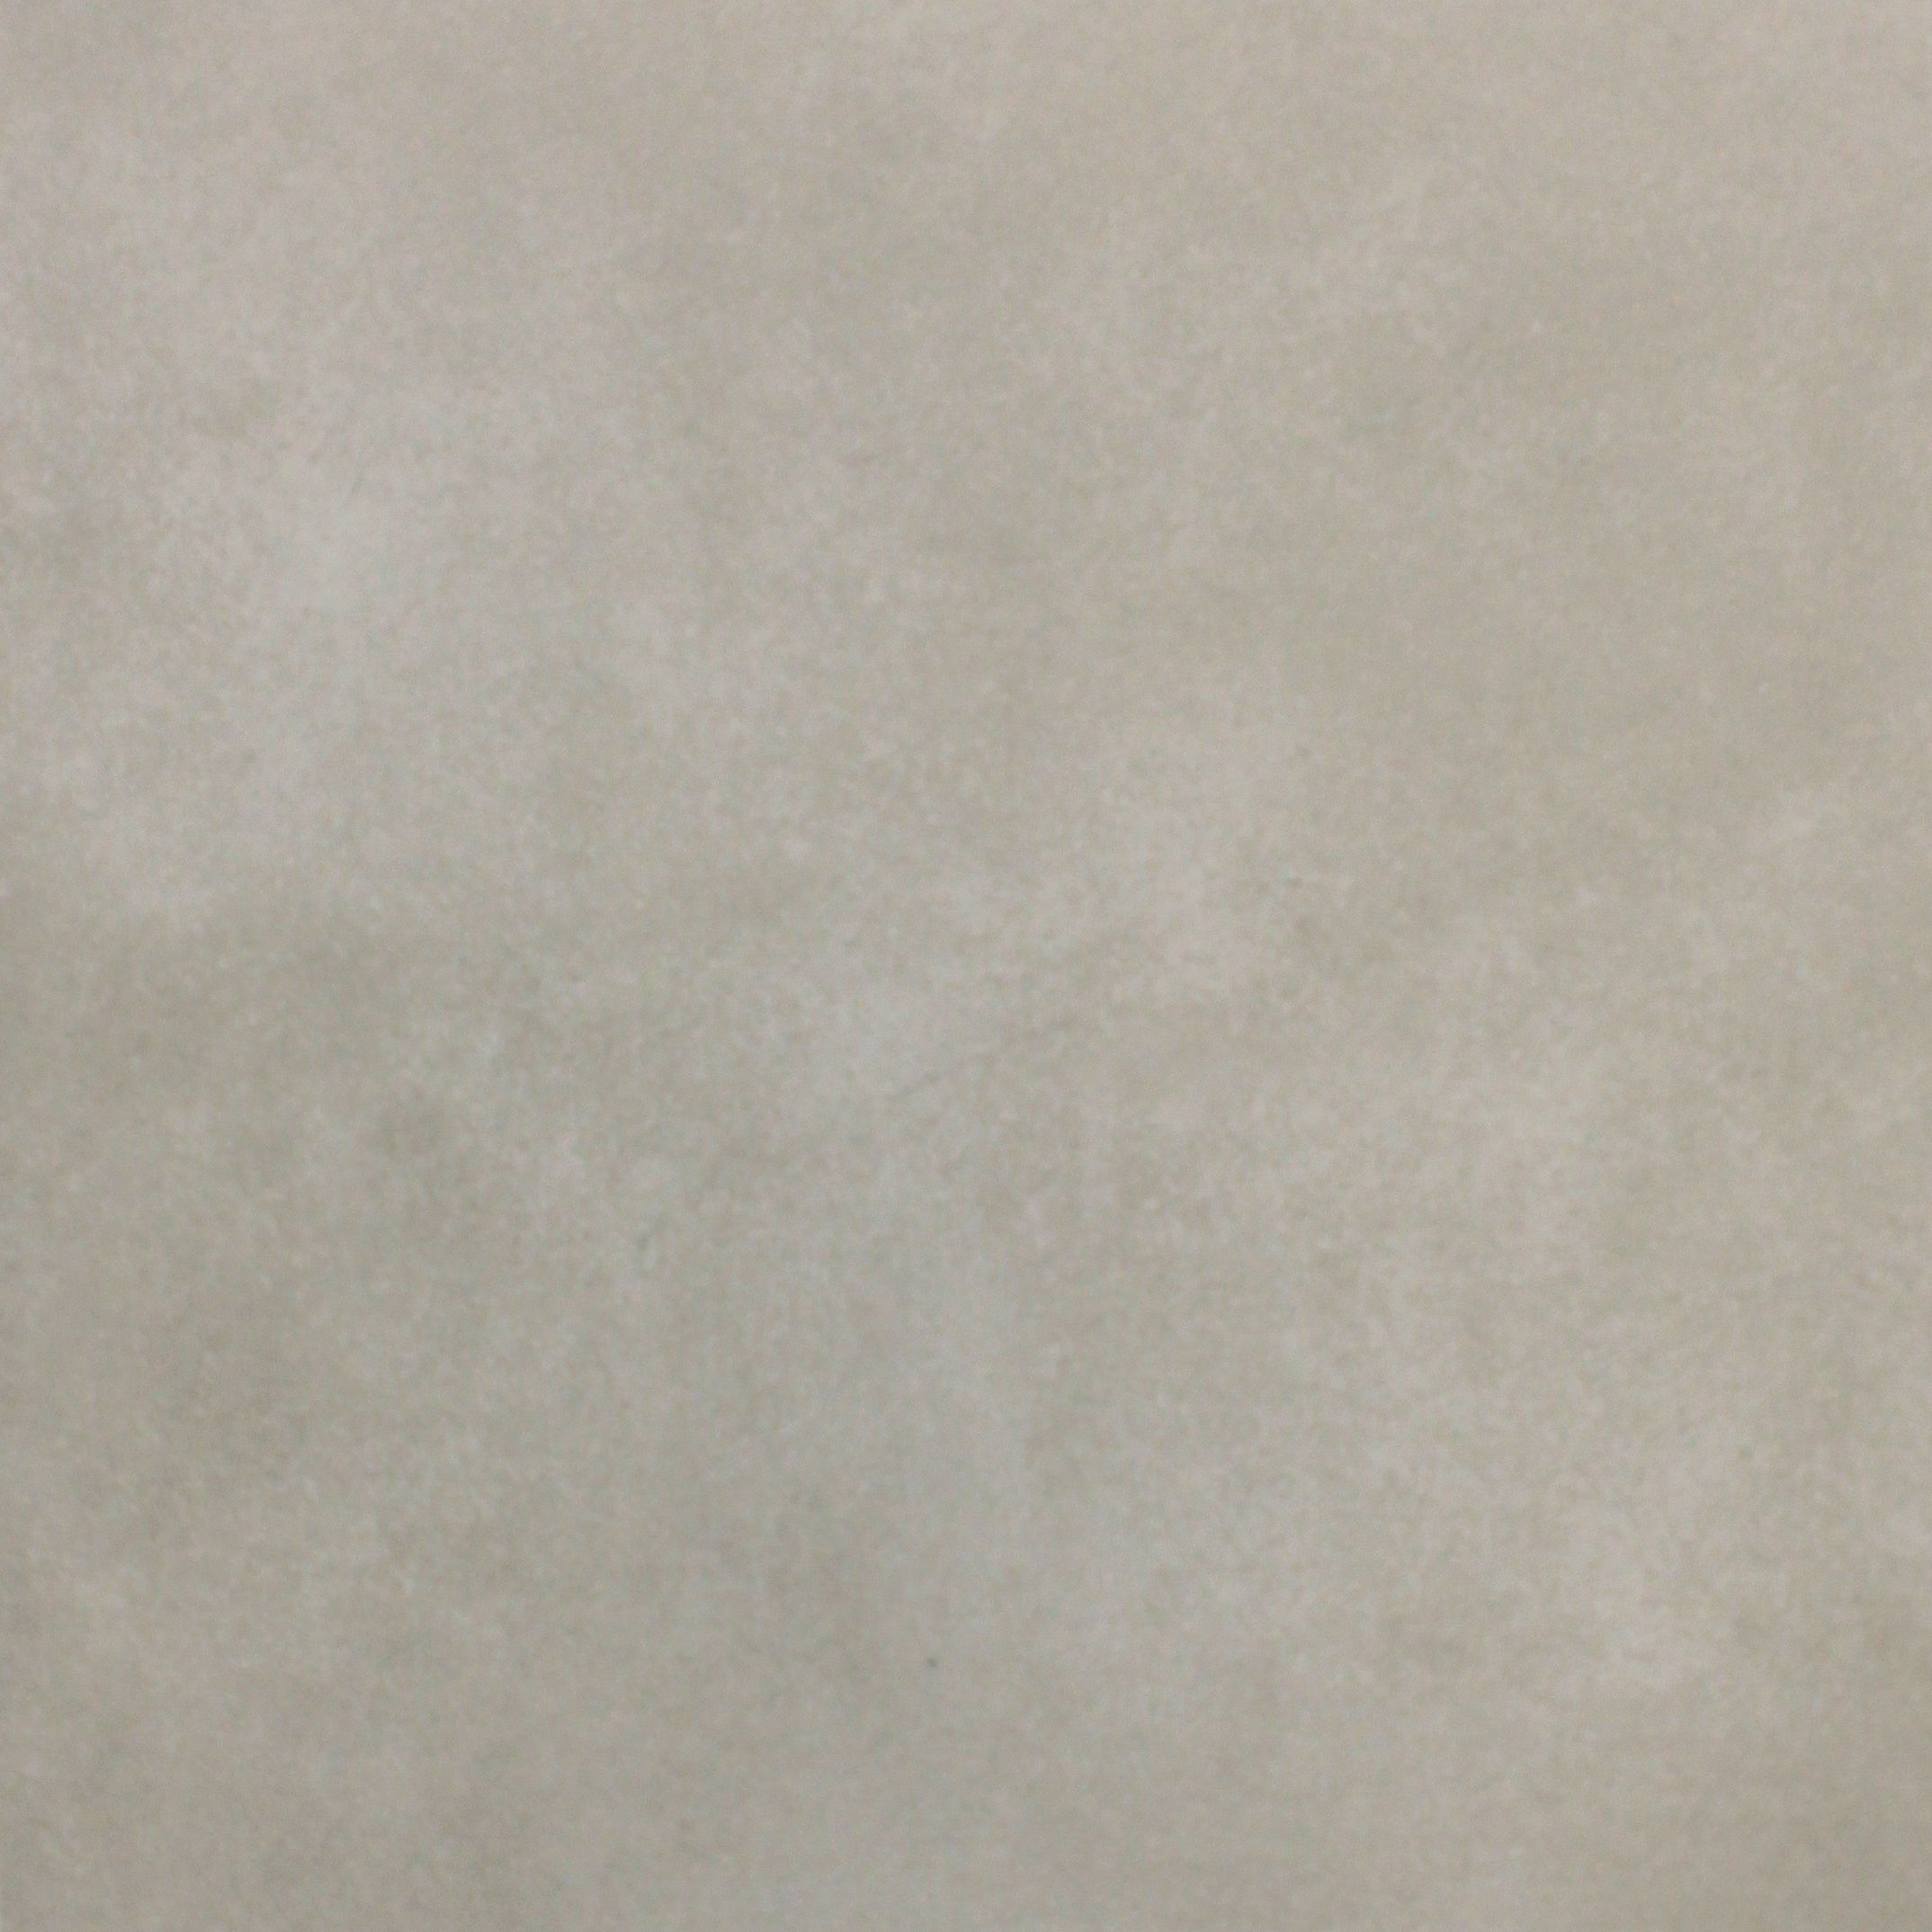 Helena Light Grey Ceramic Wall Tile, Pack Of 20, (l)250mm (w)200mm